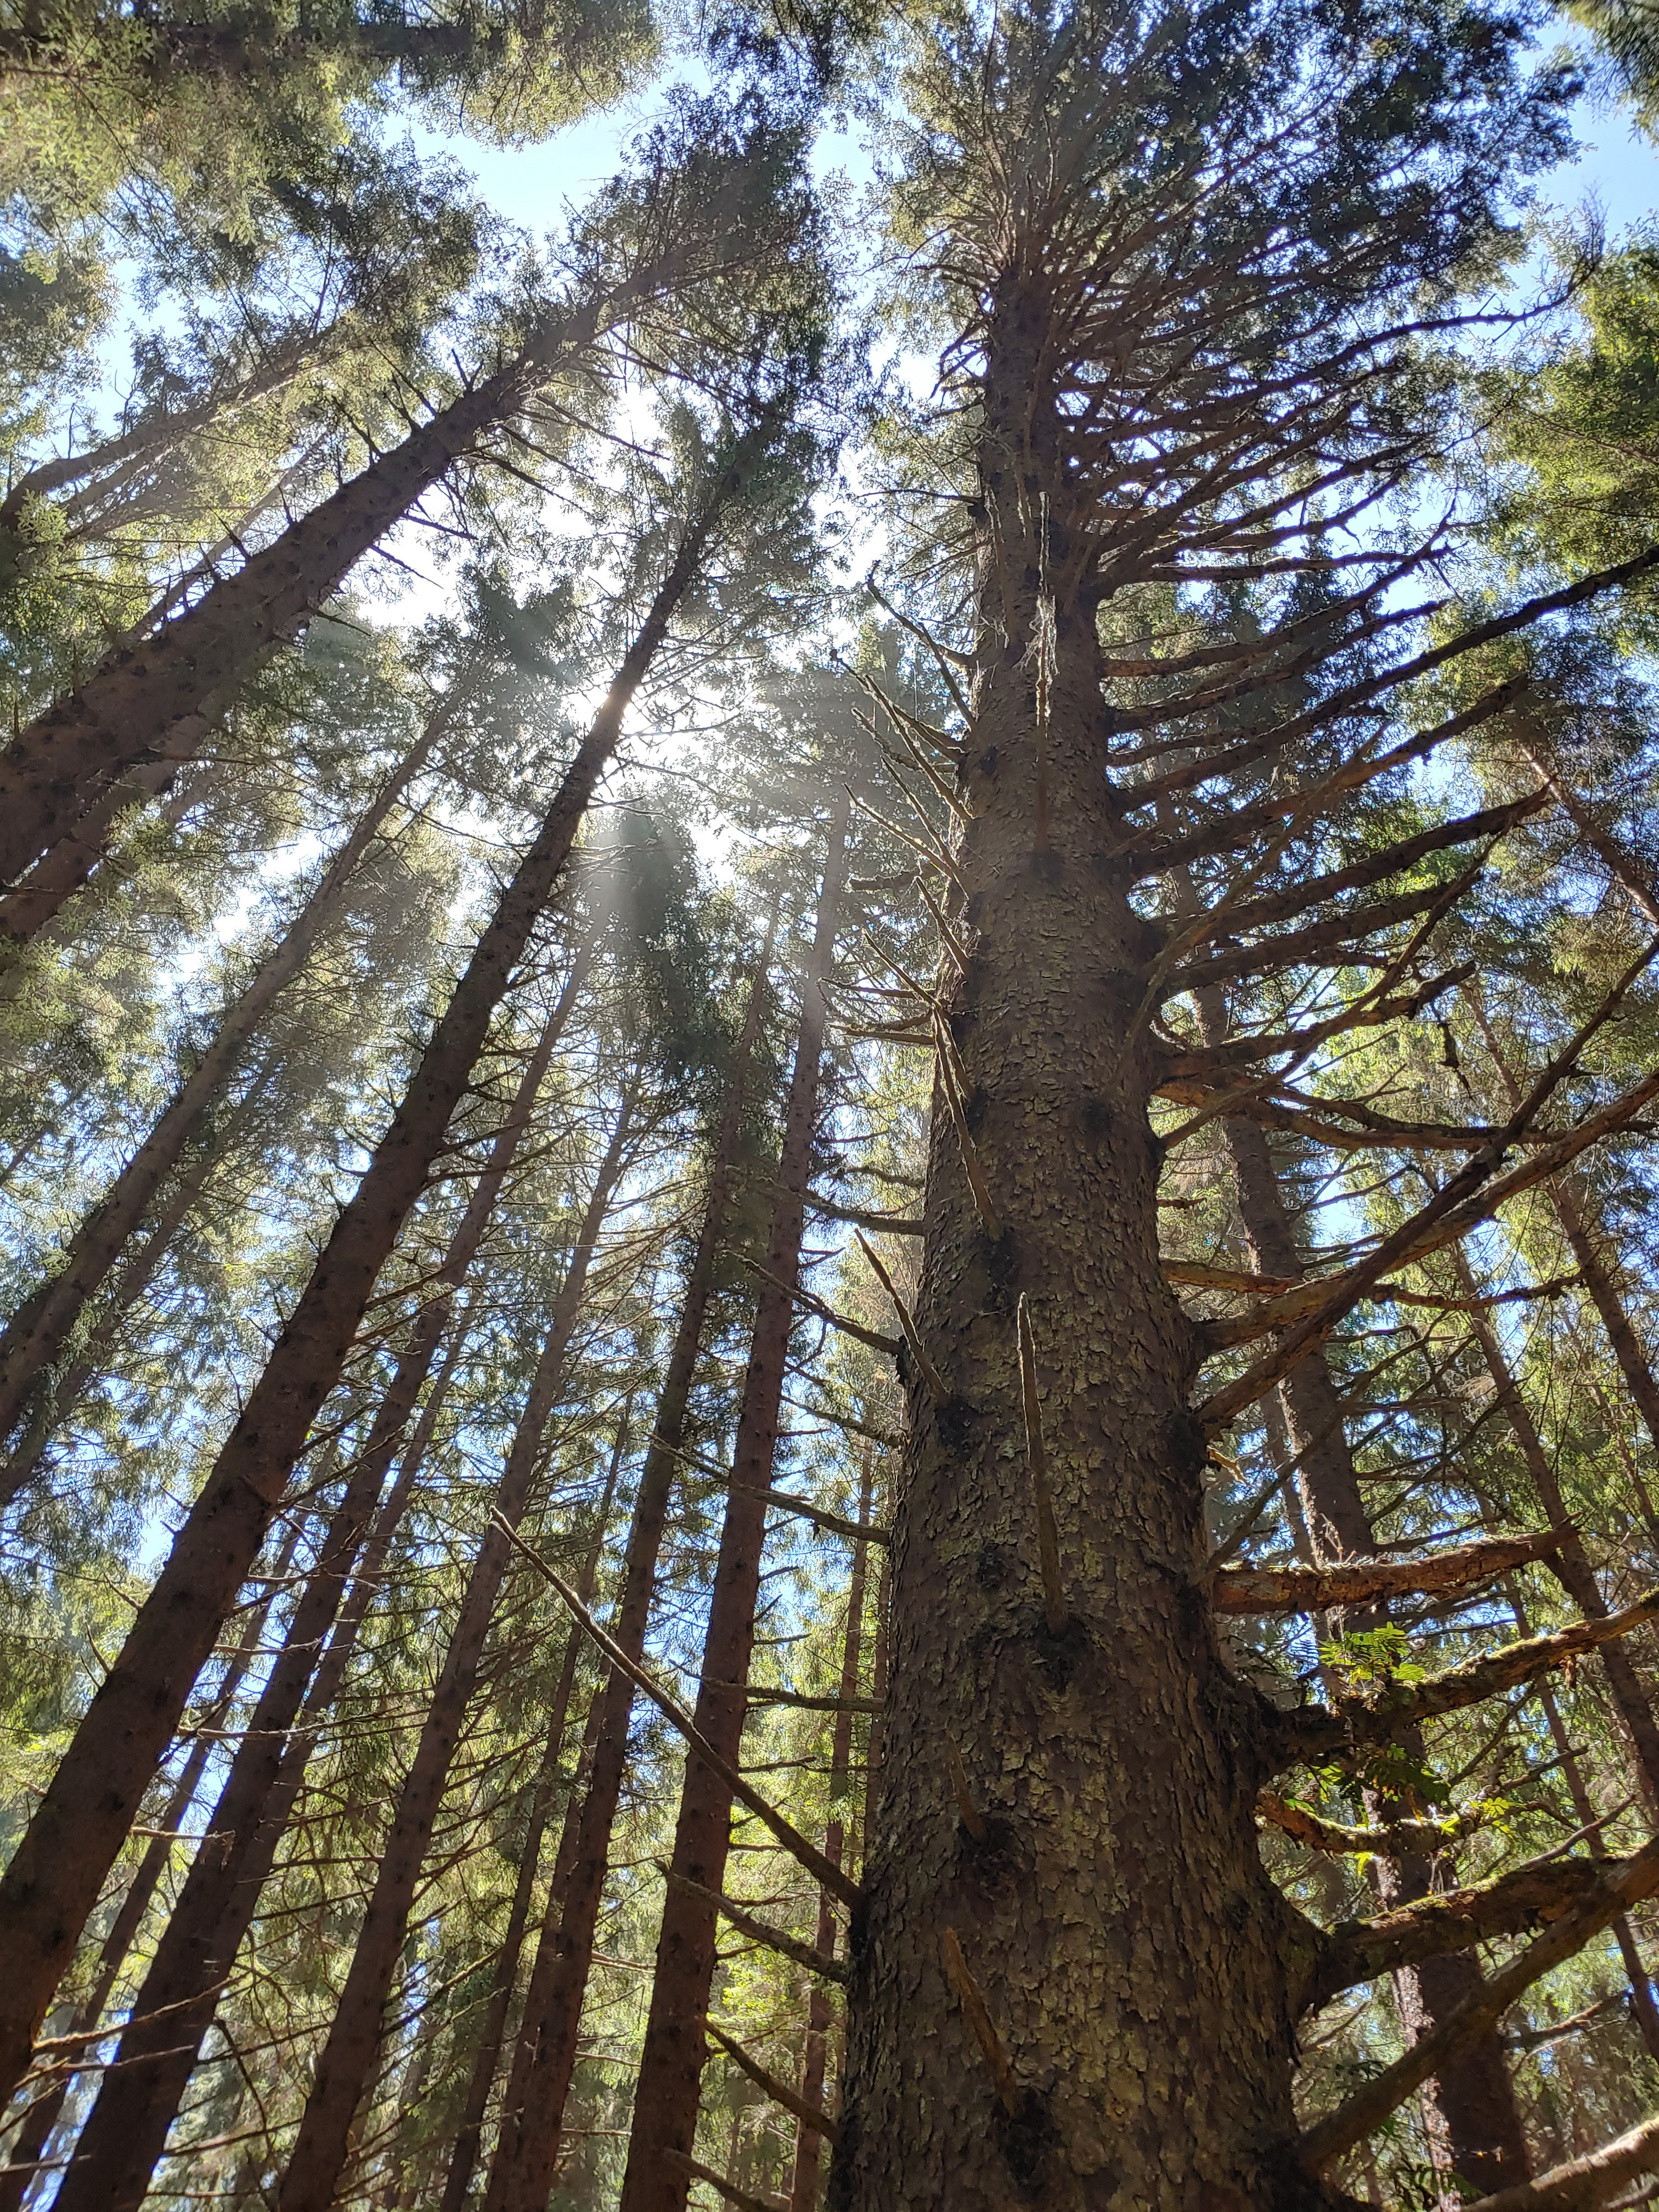 forest canopy viewed from the ground looking up